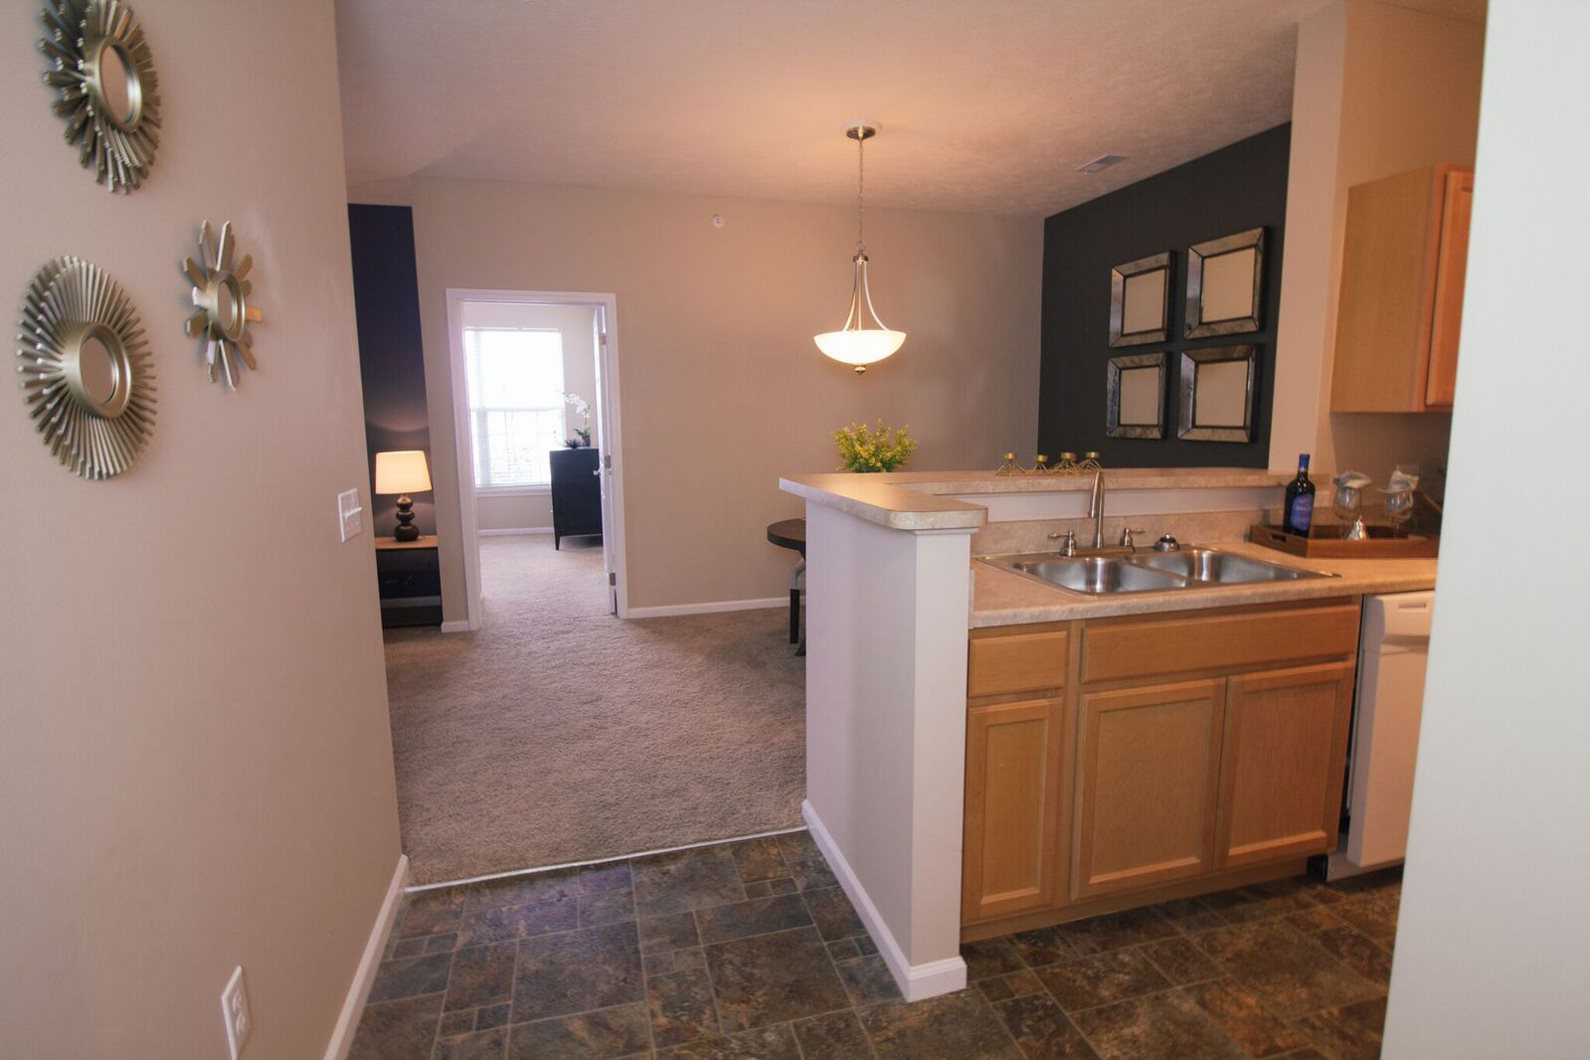 Open Floor Plan at Landings, The, Bellevue